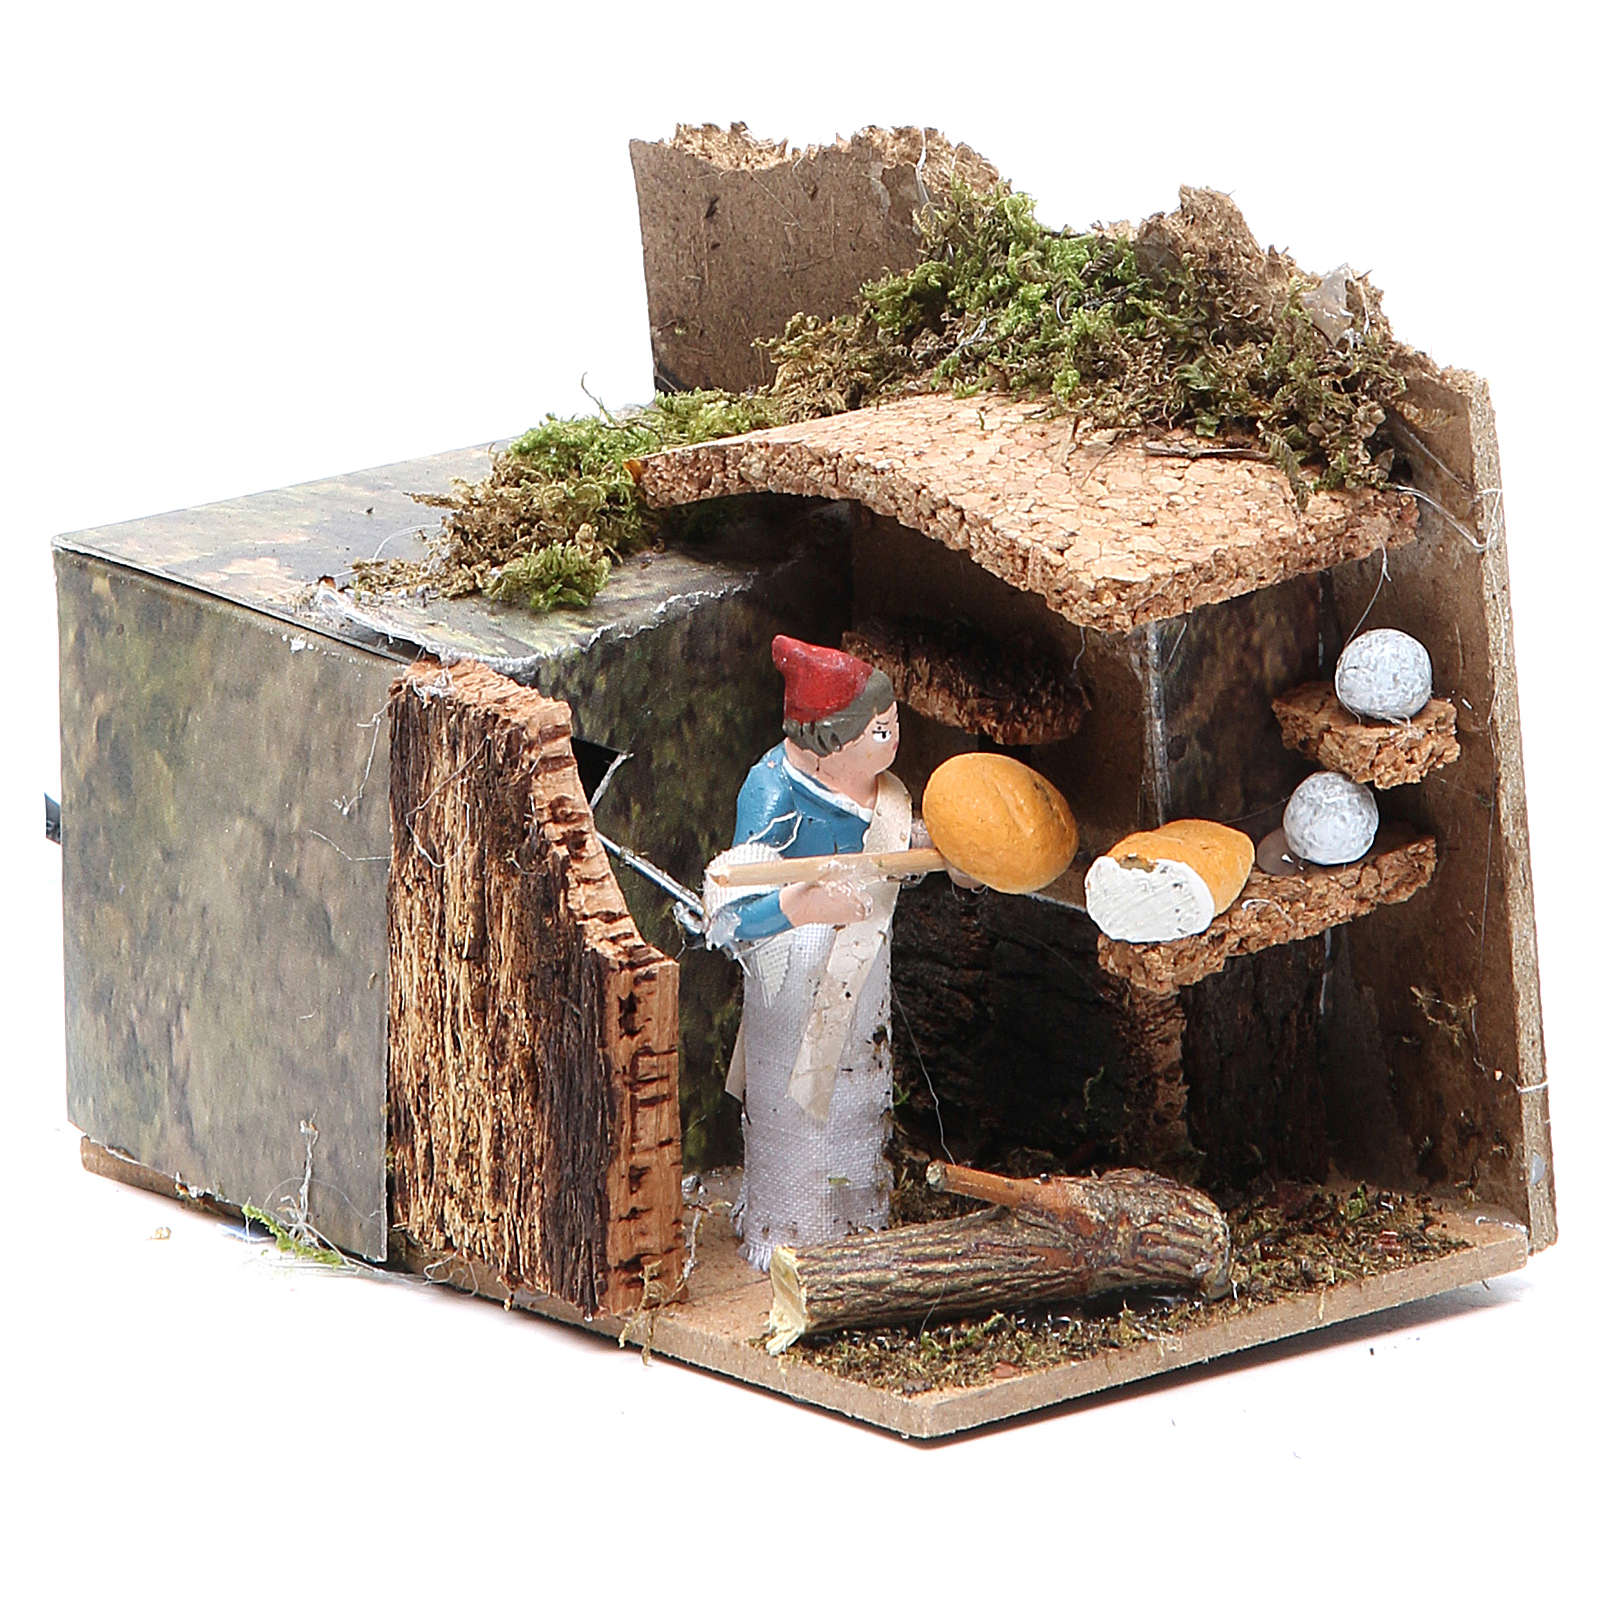 Man with bread stall measuring 4cm, animated nativity figurine 3